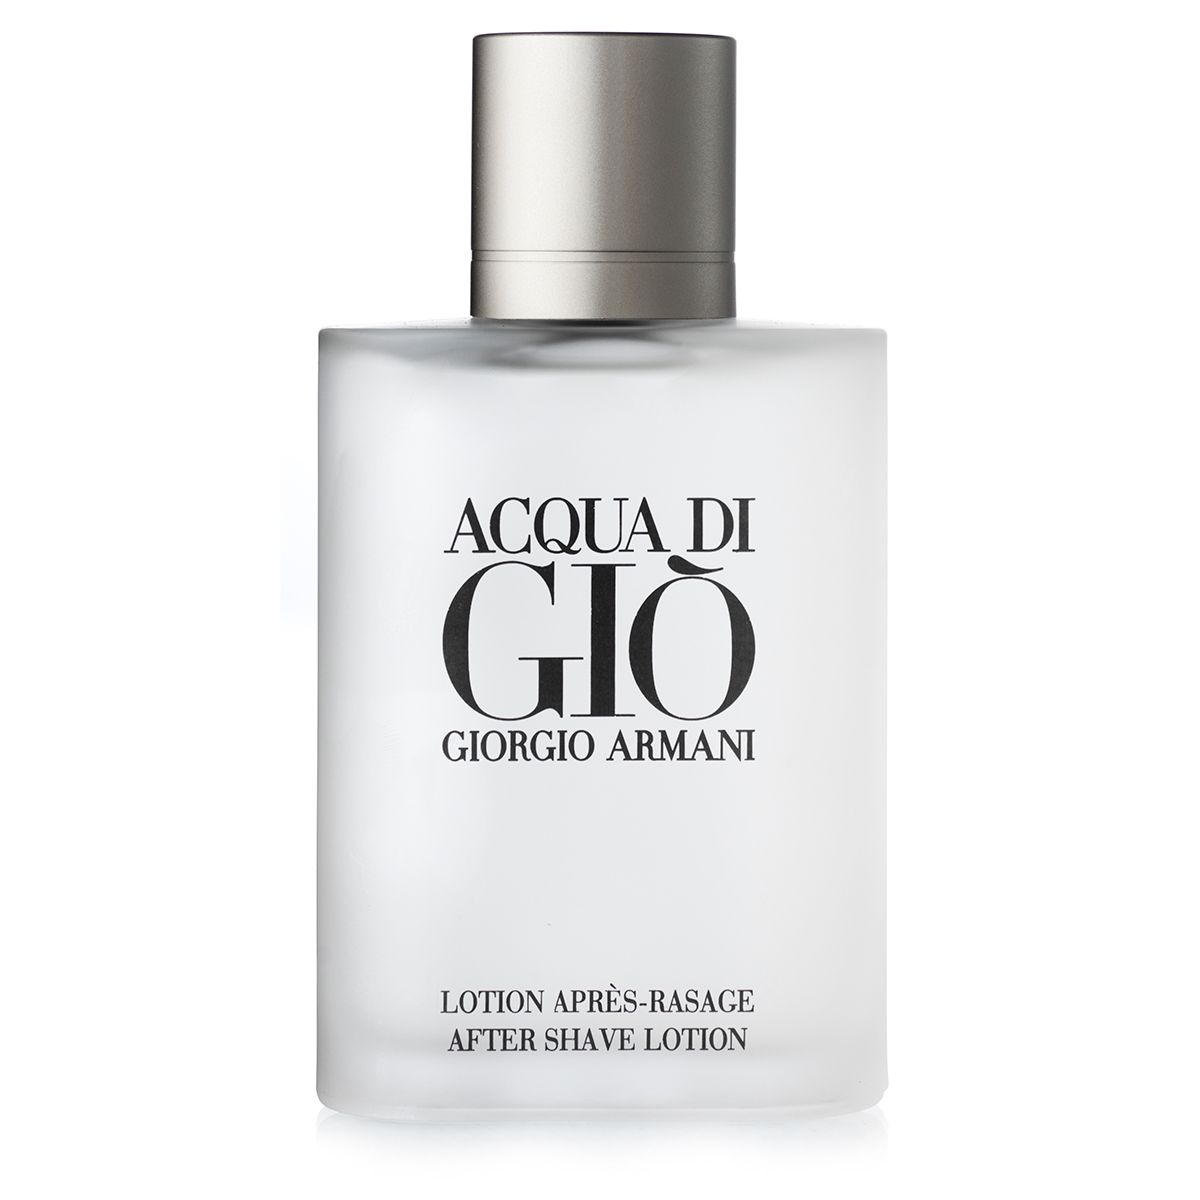 Giorgio Armani Acqua Di Gio Pour Homme After Shave Lotion - 100 ml